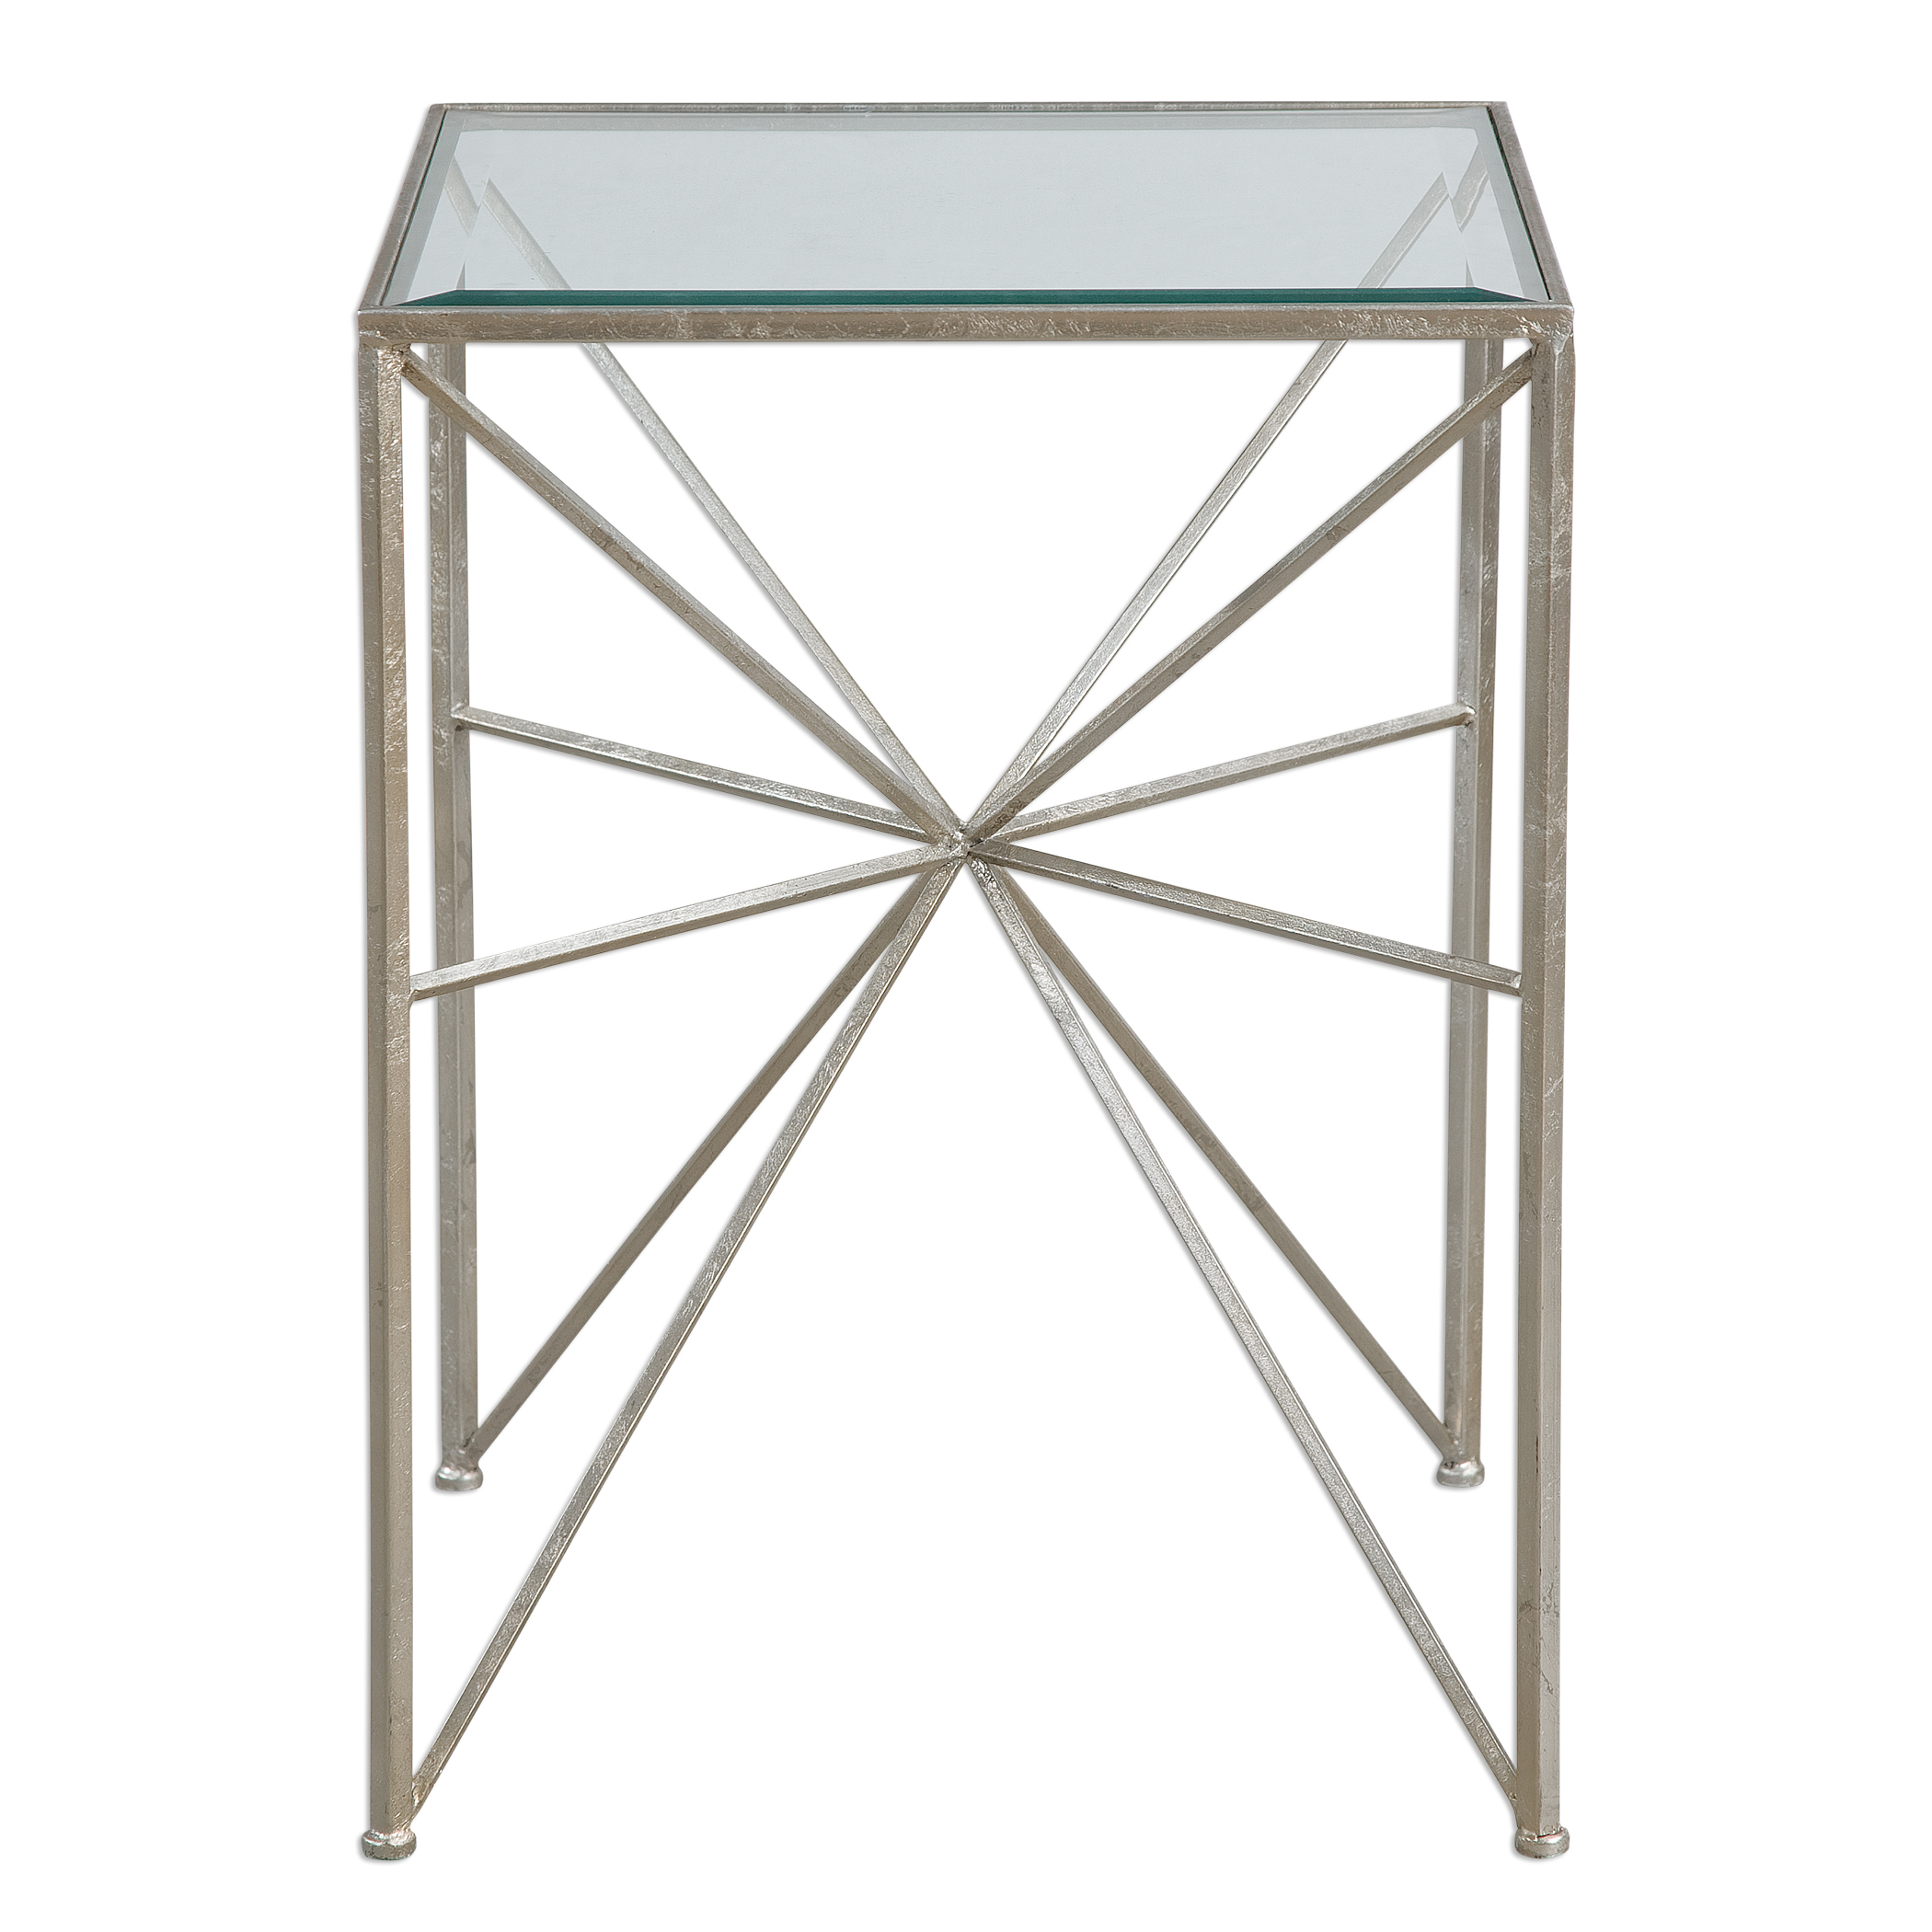 Accent Furniture - Occasional Tables Silvana Silver Side Table by Uttermost at Upper Room Home Furnishings